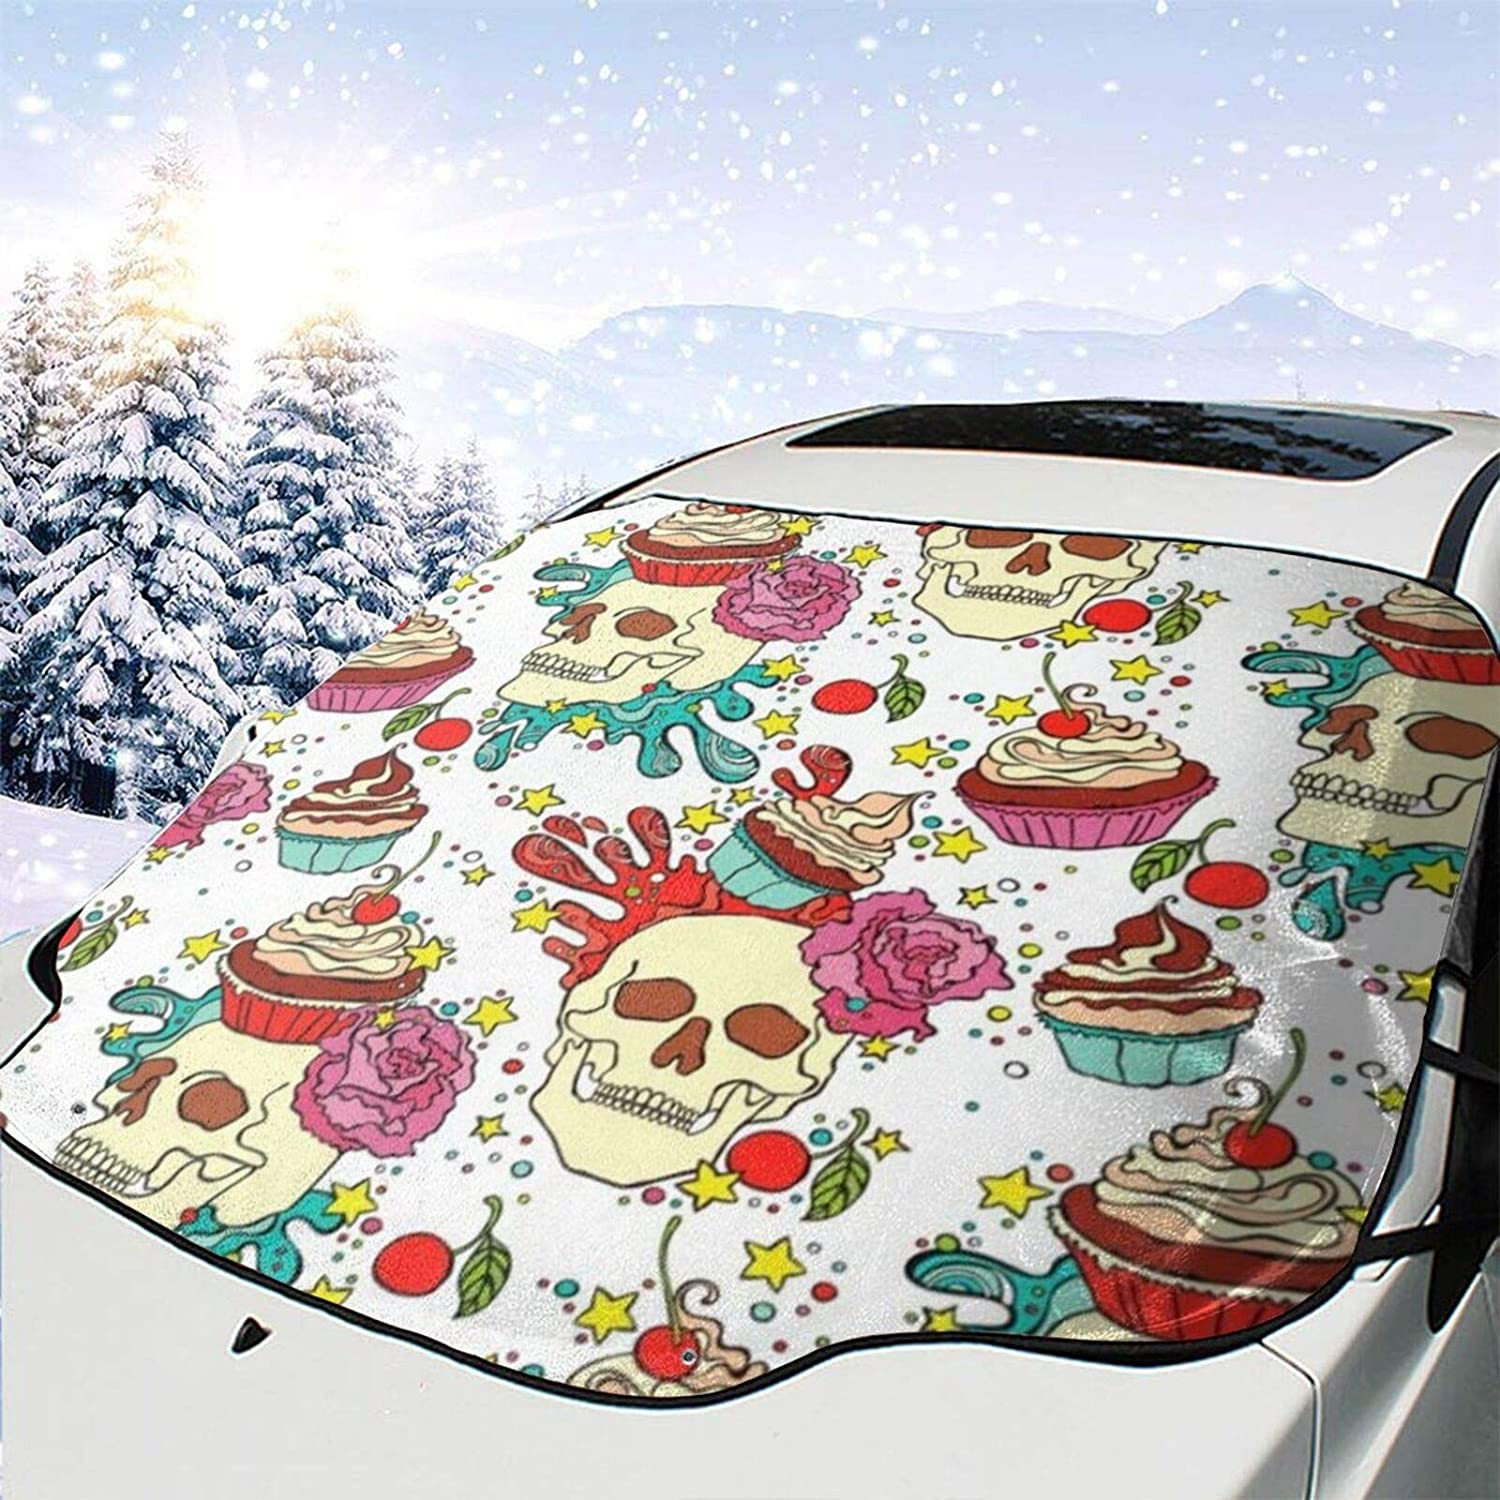 N\ A Car Windshield Snow Cover Sugar Skull Christmas Ice Removal Wiper Visor Protector All Weather Winter Summer Auto Car SUV Sun Shade for Front Windshield Window